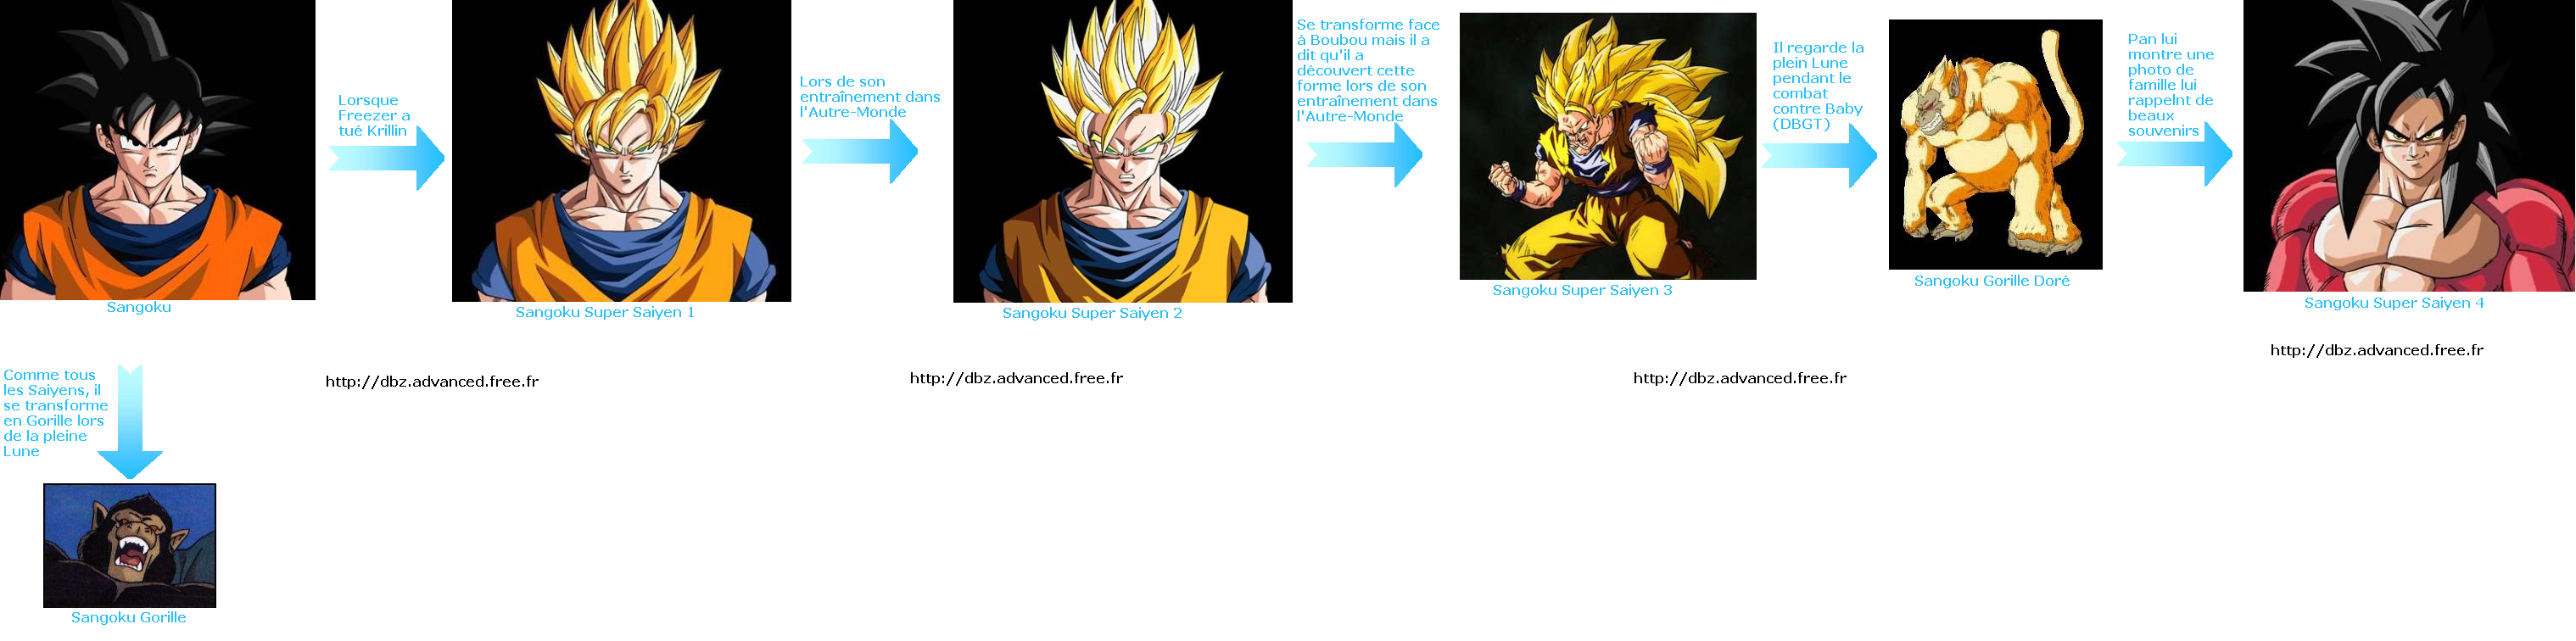 Dragon ball z advanced toutes les transformations - Tout les image de dragon ball z ...